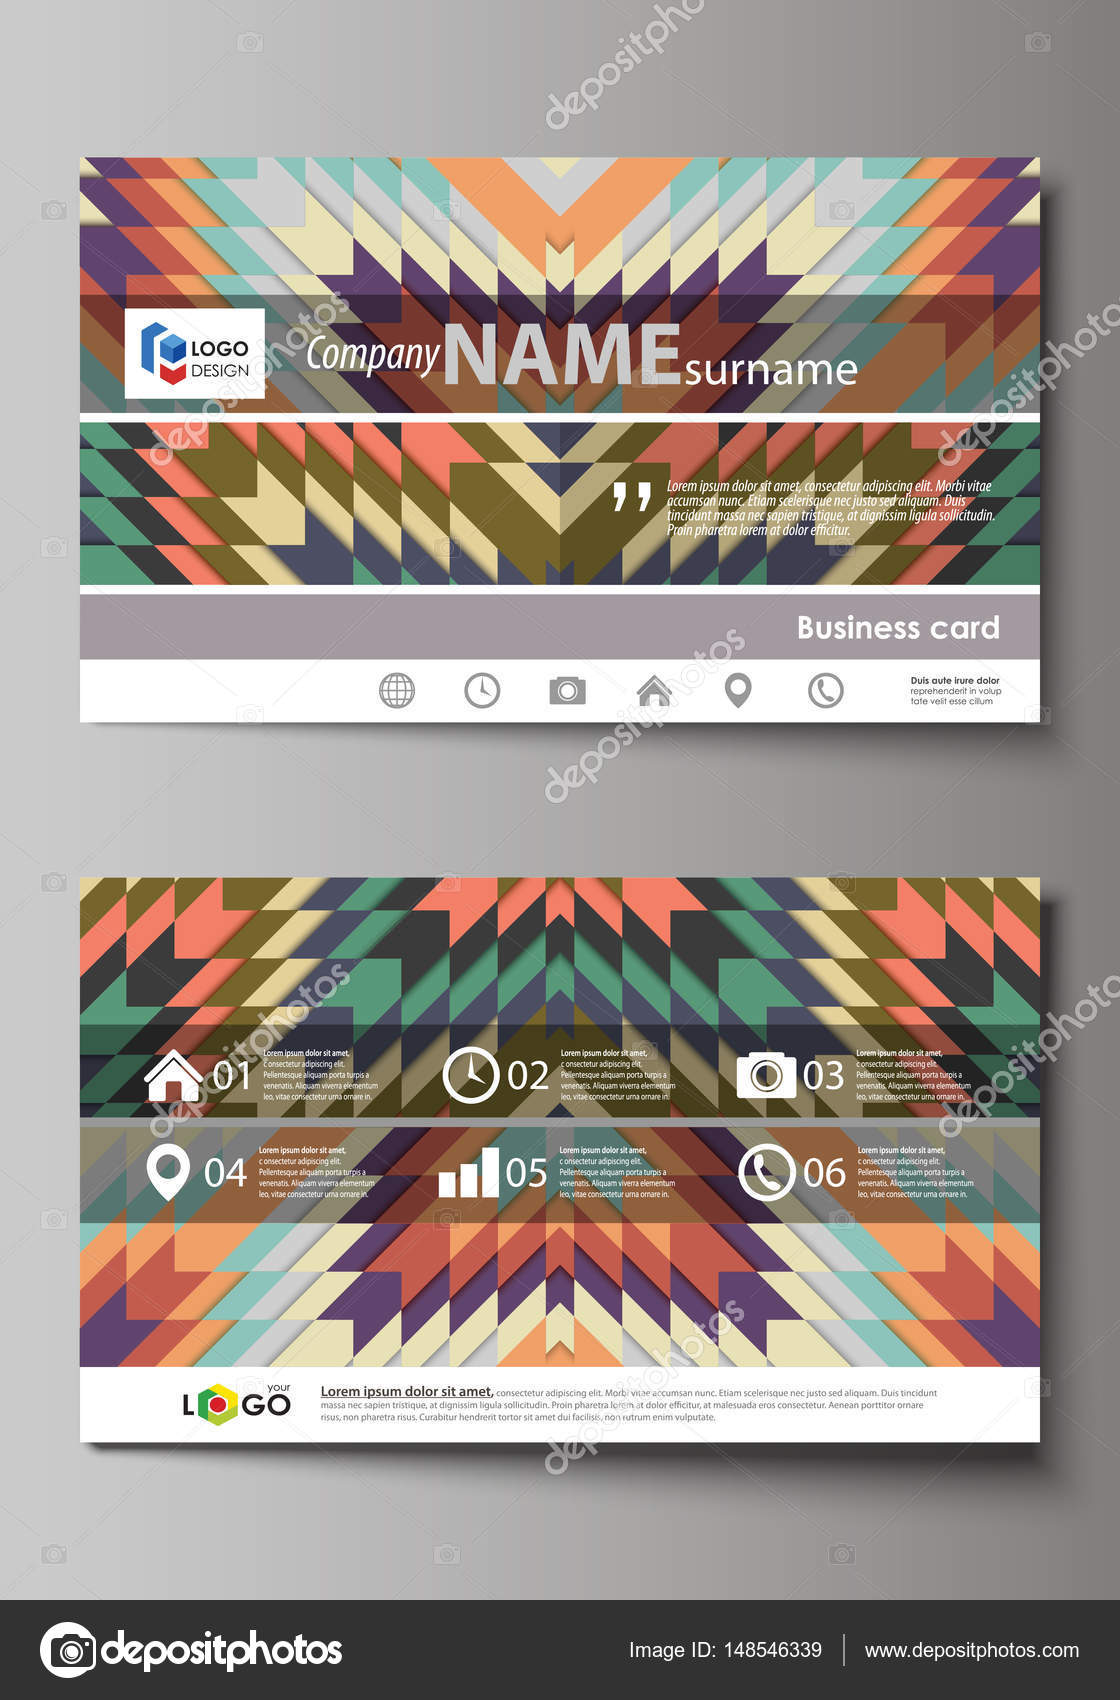 Business card templates easy editable layout abstract vector business card templates easy editable layout abstract vector design template tribal pattern geometrical ornament in ethno syle ethnic hipster backdrop alramifo Images